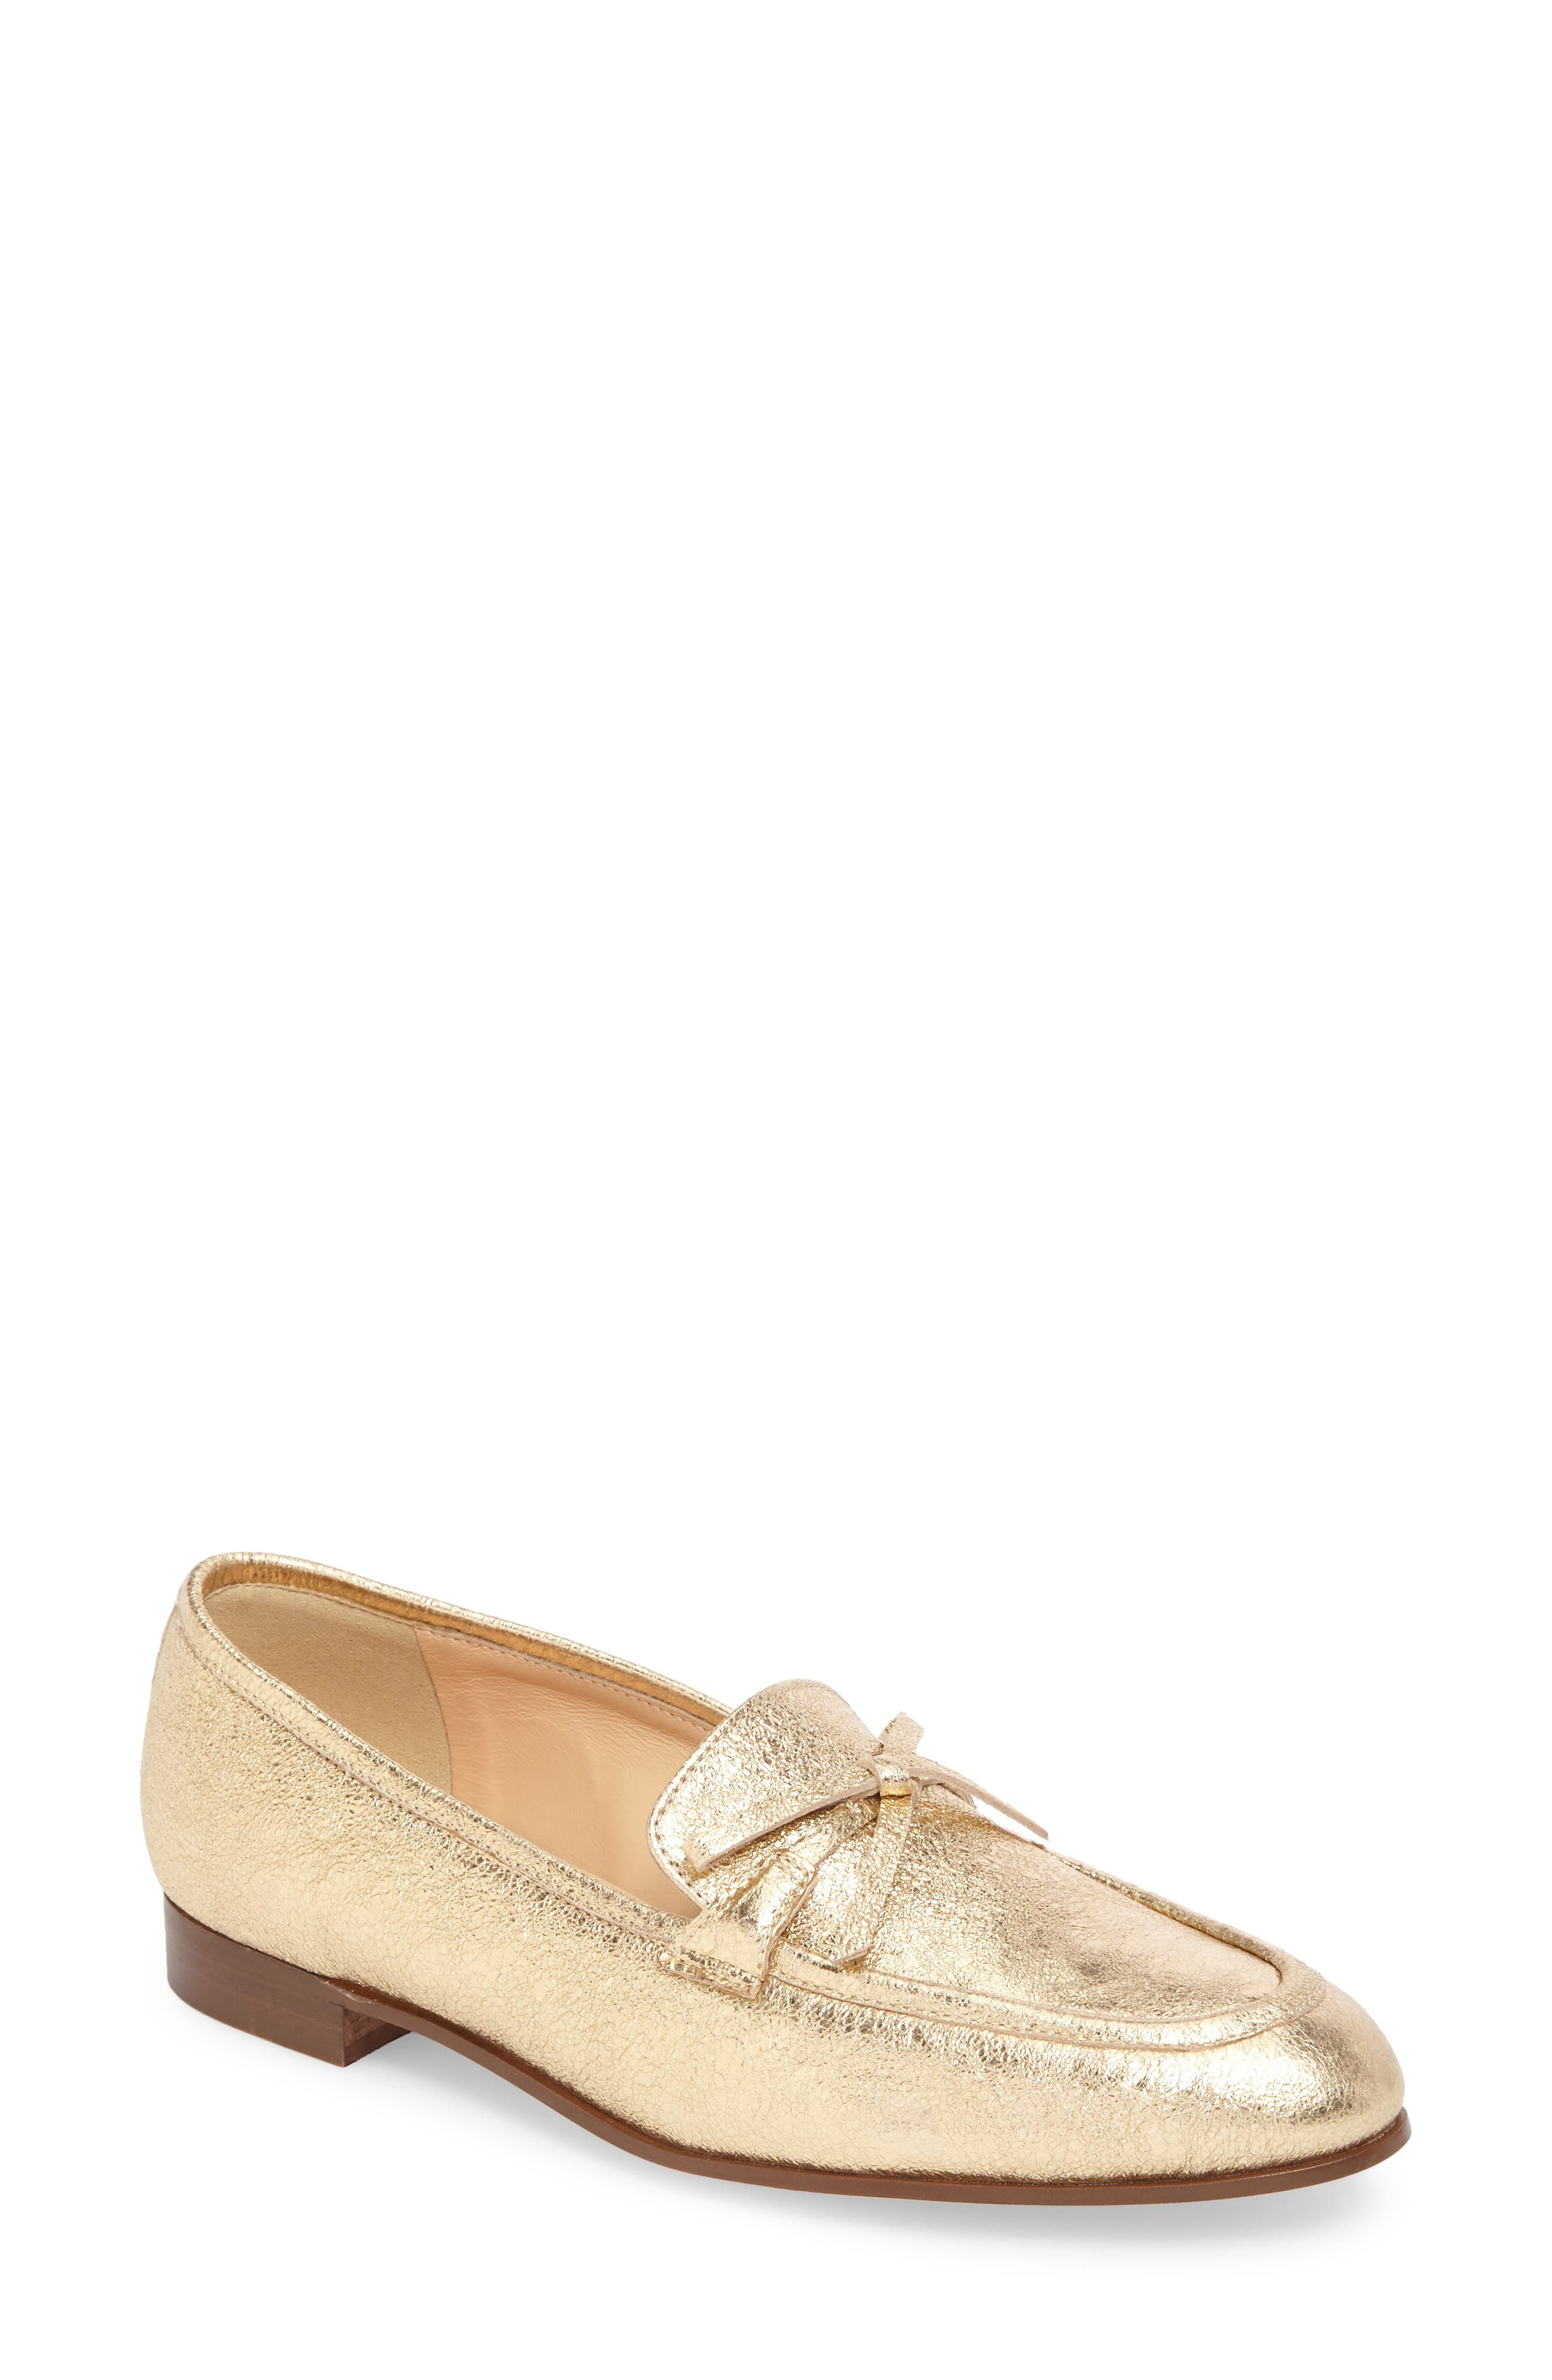 J. Crew Metallic Bow Loafer,                         Main,                         color, 710